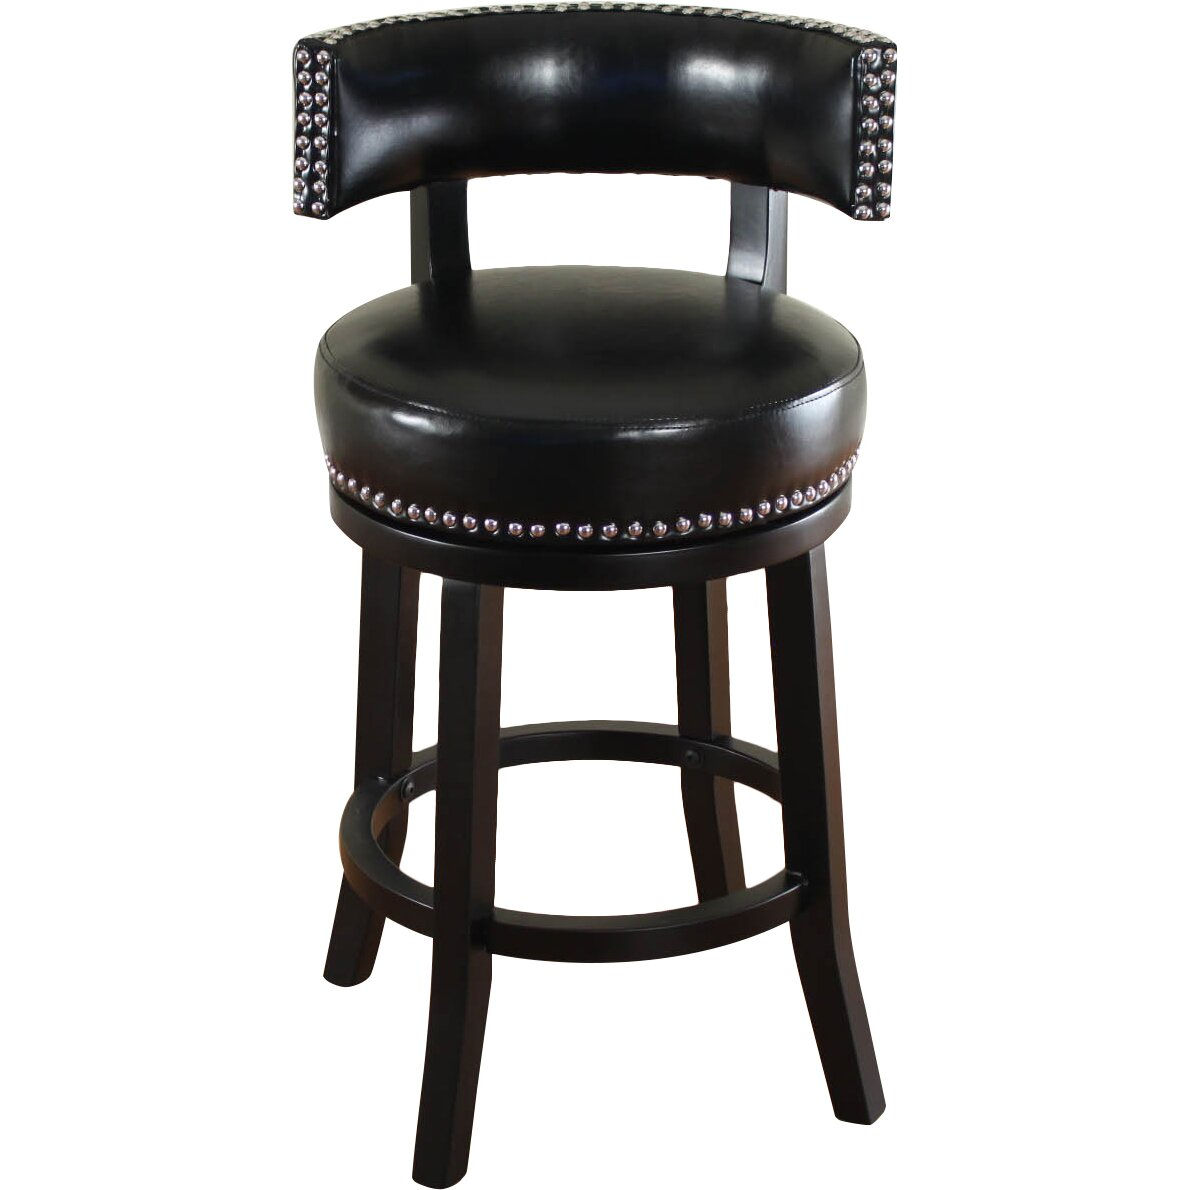 Alcott Hill Cyril 26quot Swivel Bar Stool with Cushion  : Alcott Hill Cyril 26 Swivel Bar Stool with Cushion ALCT5277 from www.wayfair.com size 1190 x 1190 jpeg 112kB